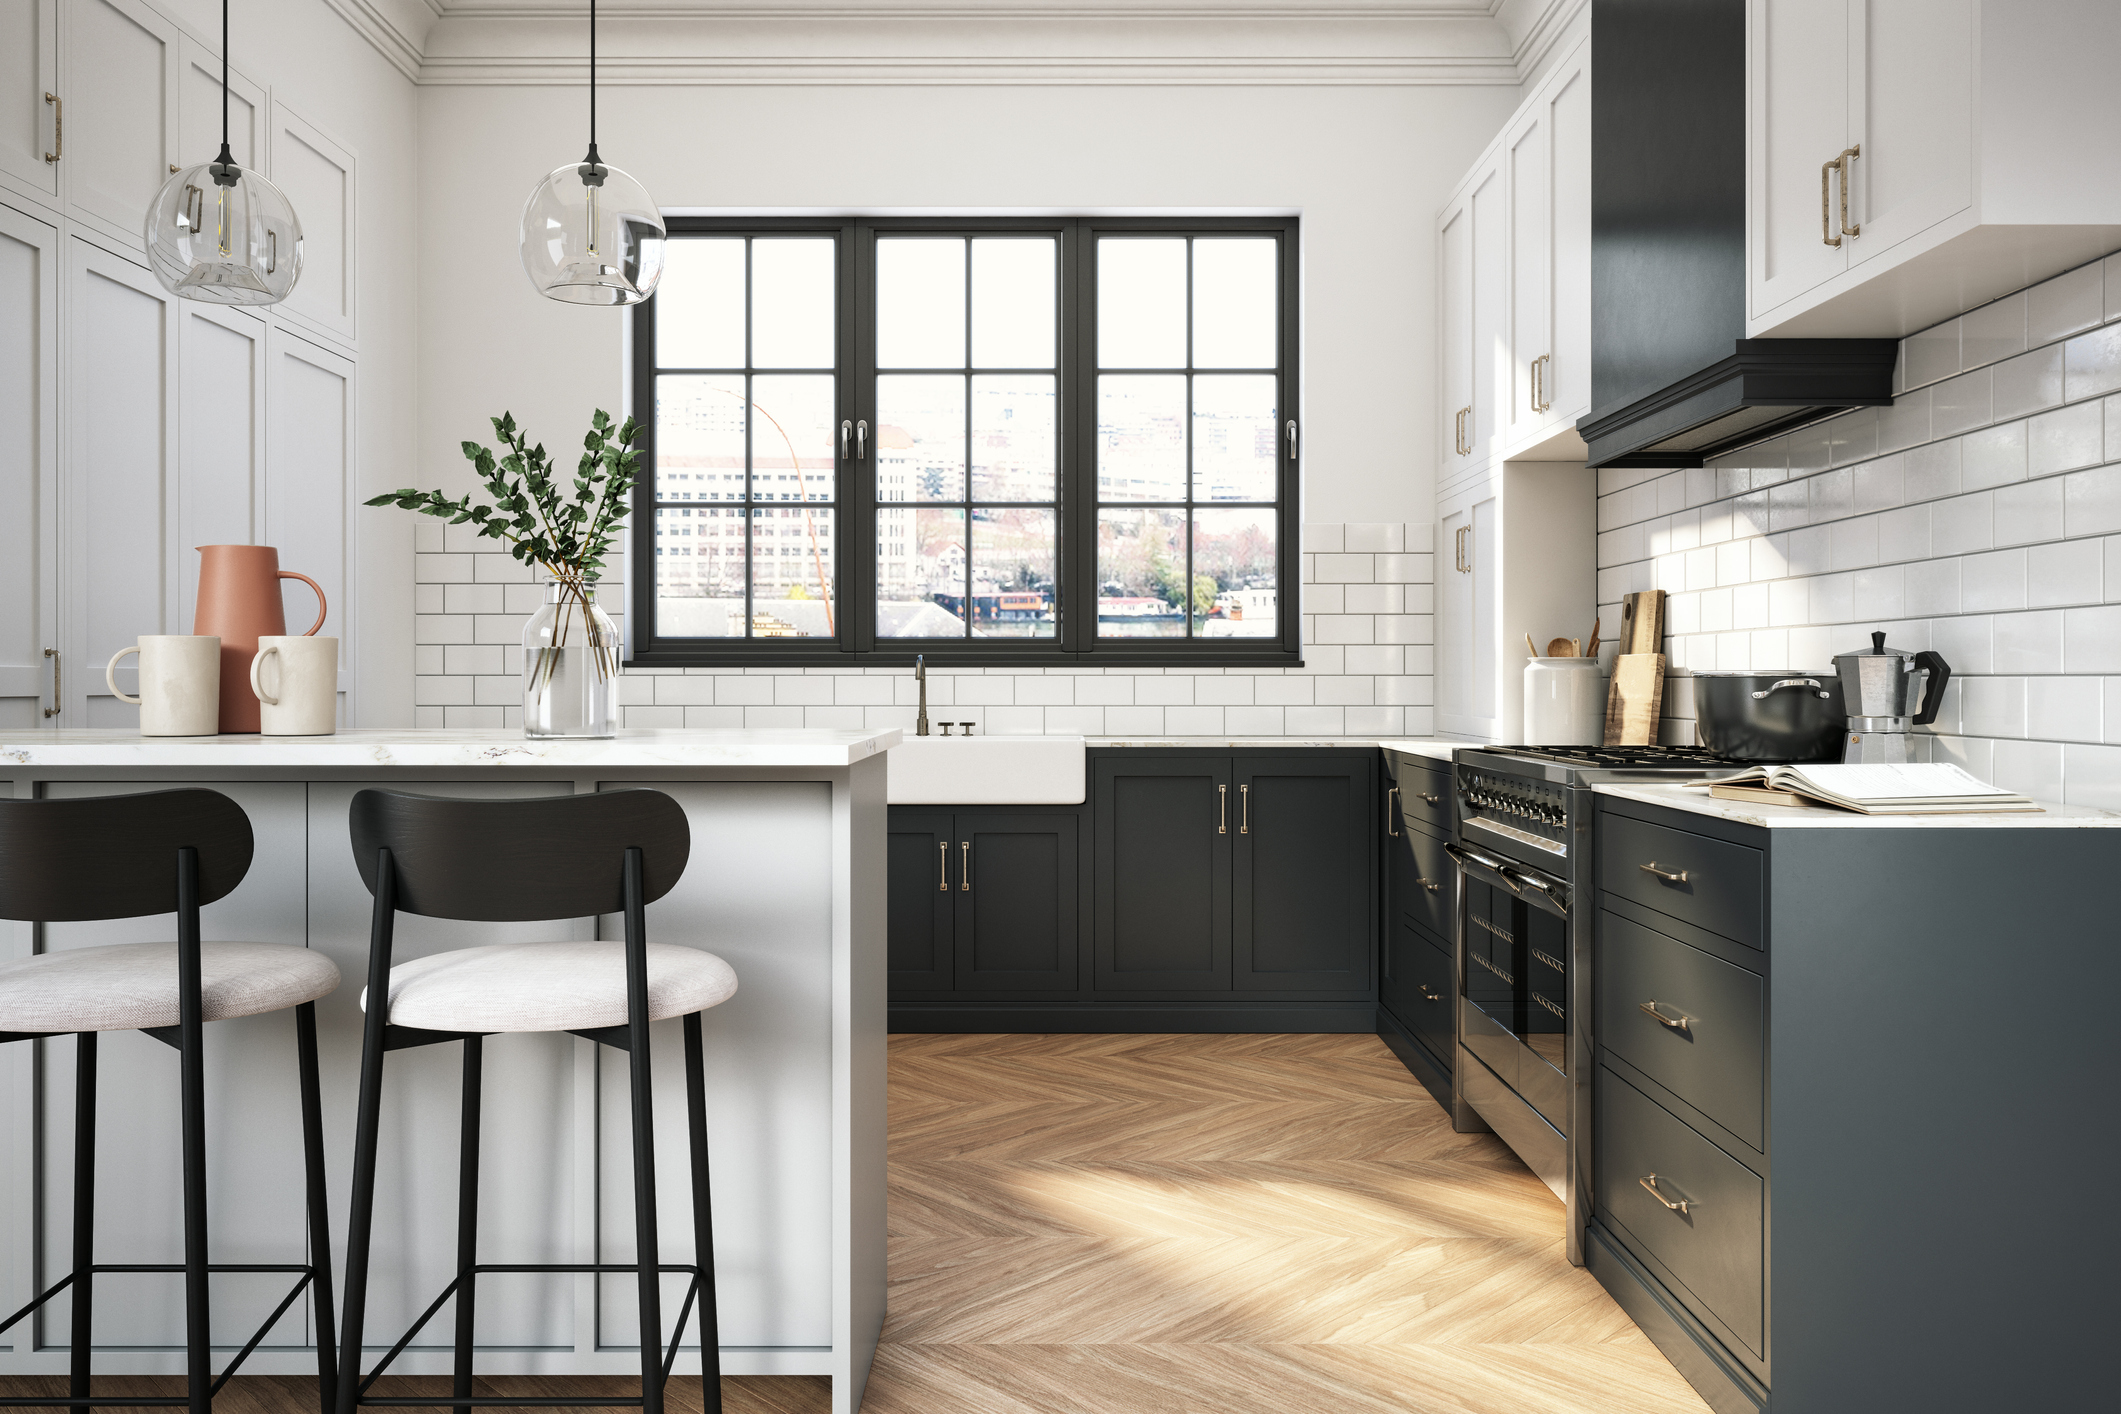 A kitchen with a white subway tile backsplash and navy-blue accents.